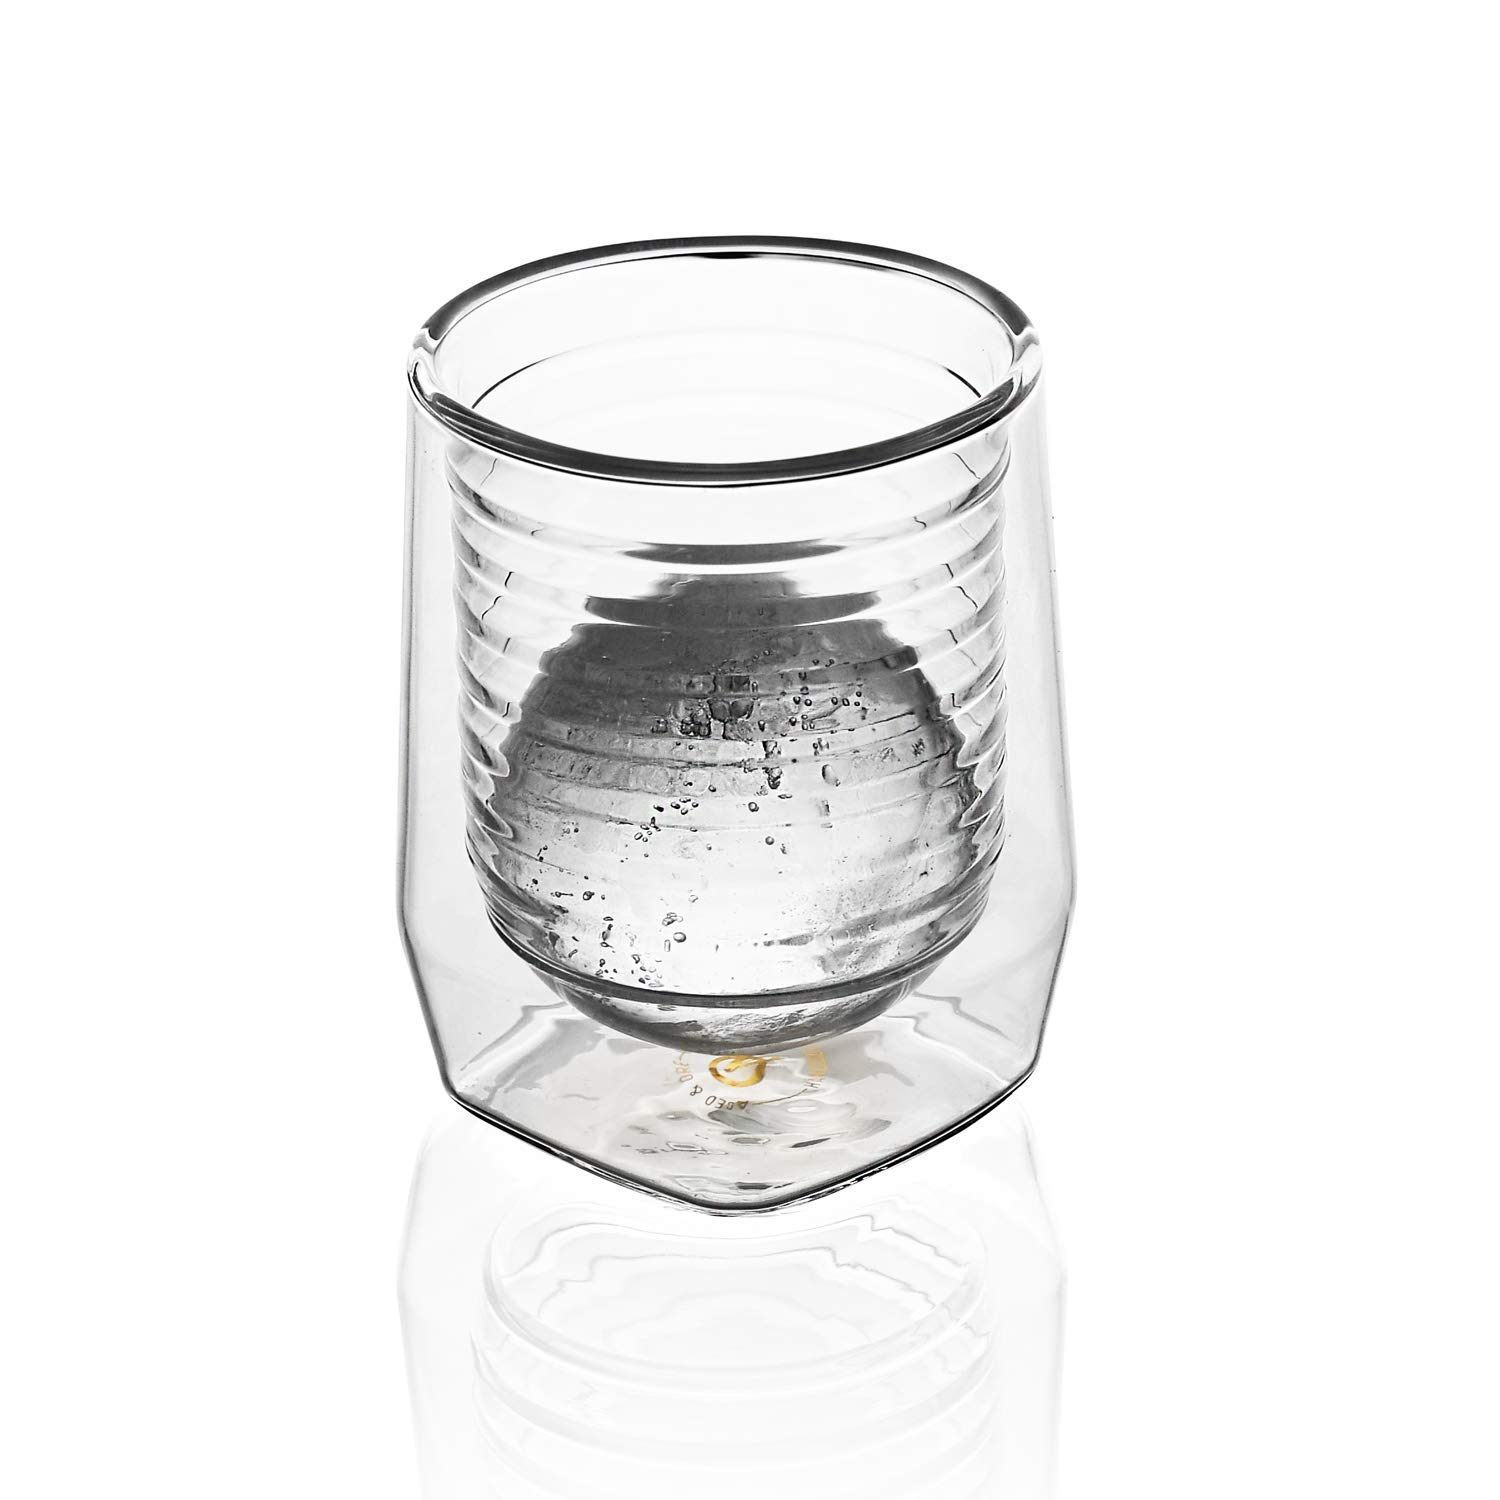 Aged & Ore - The Duo Glass | Hand Blown Double Walled Whiskey Glass Gift Set with Free Silicone Ice Molds | Integrated Measuring Lines for the Perfect Cocktail | Durable Modern Tumbler | Set of 4 by Aged & Ore (Image #6)